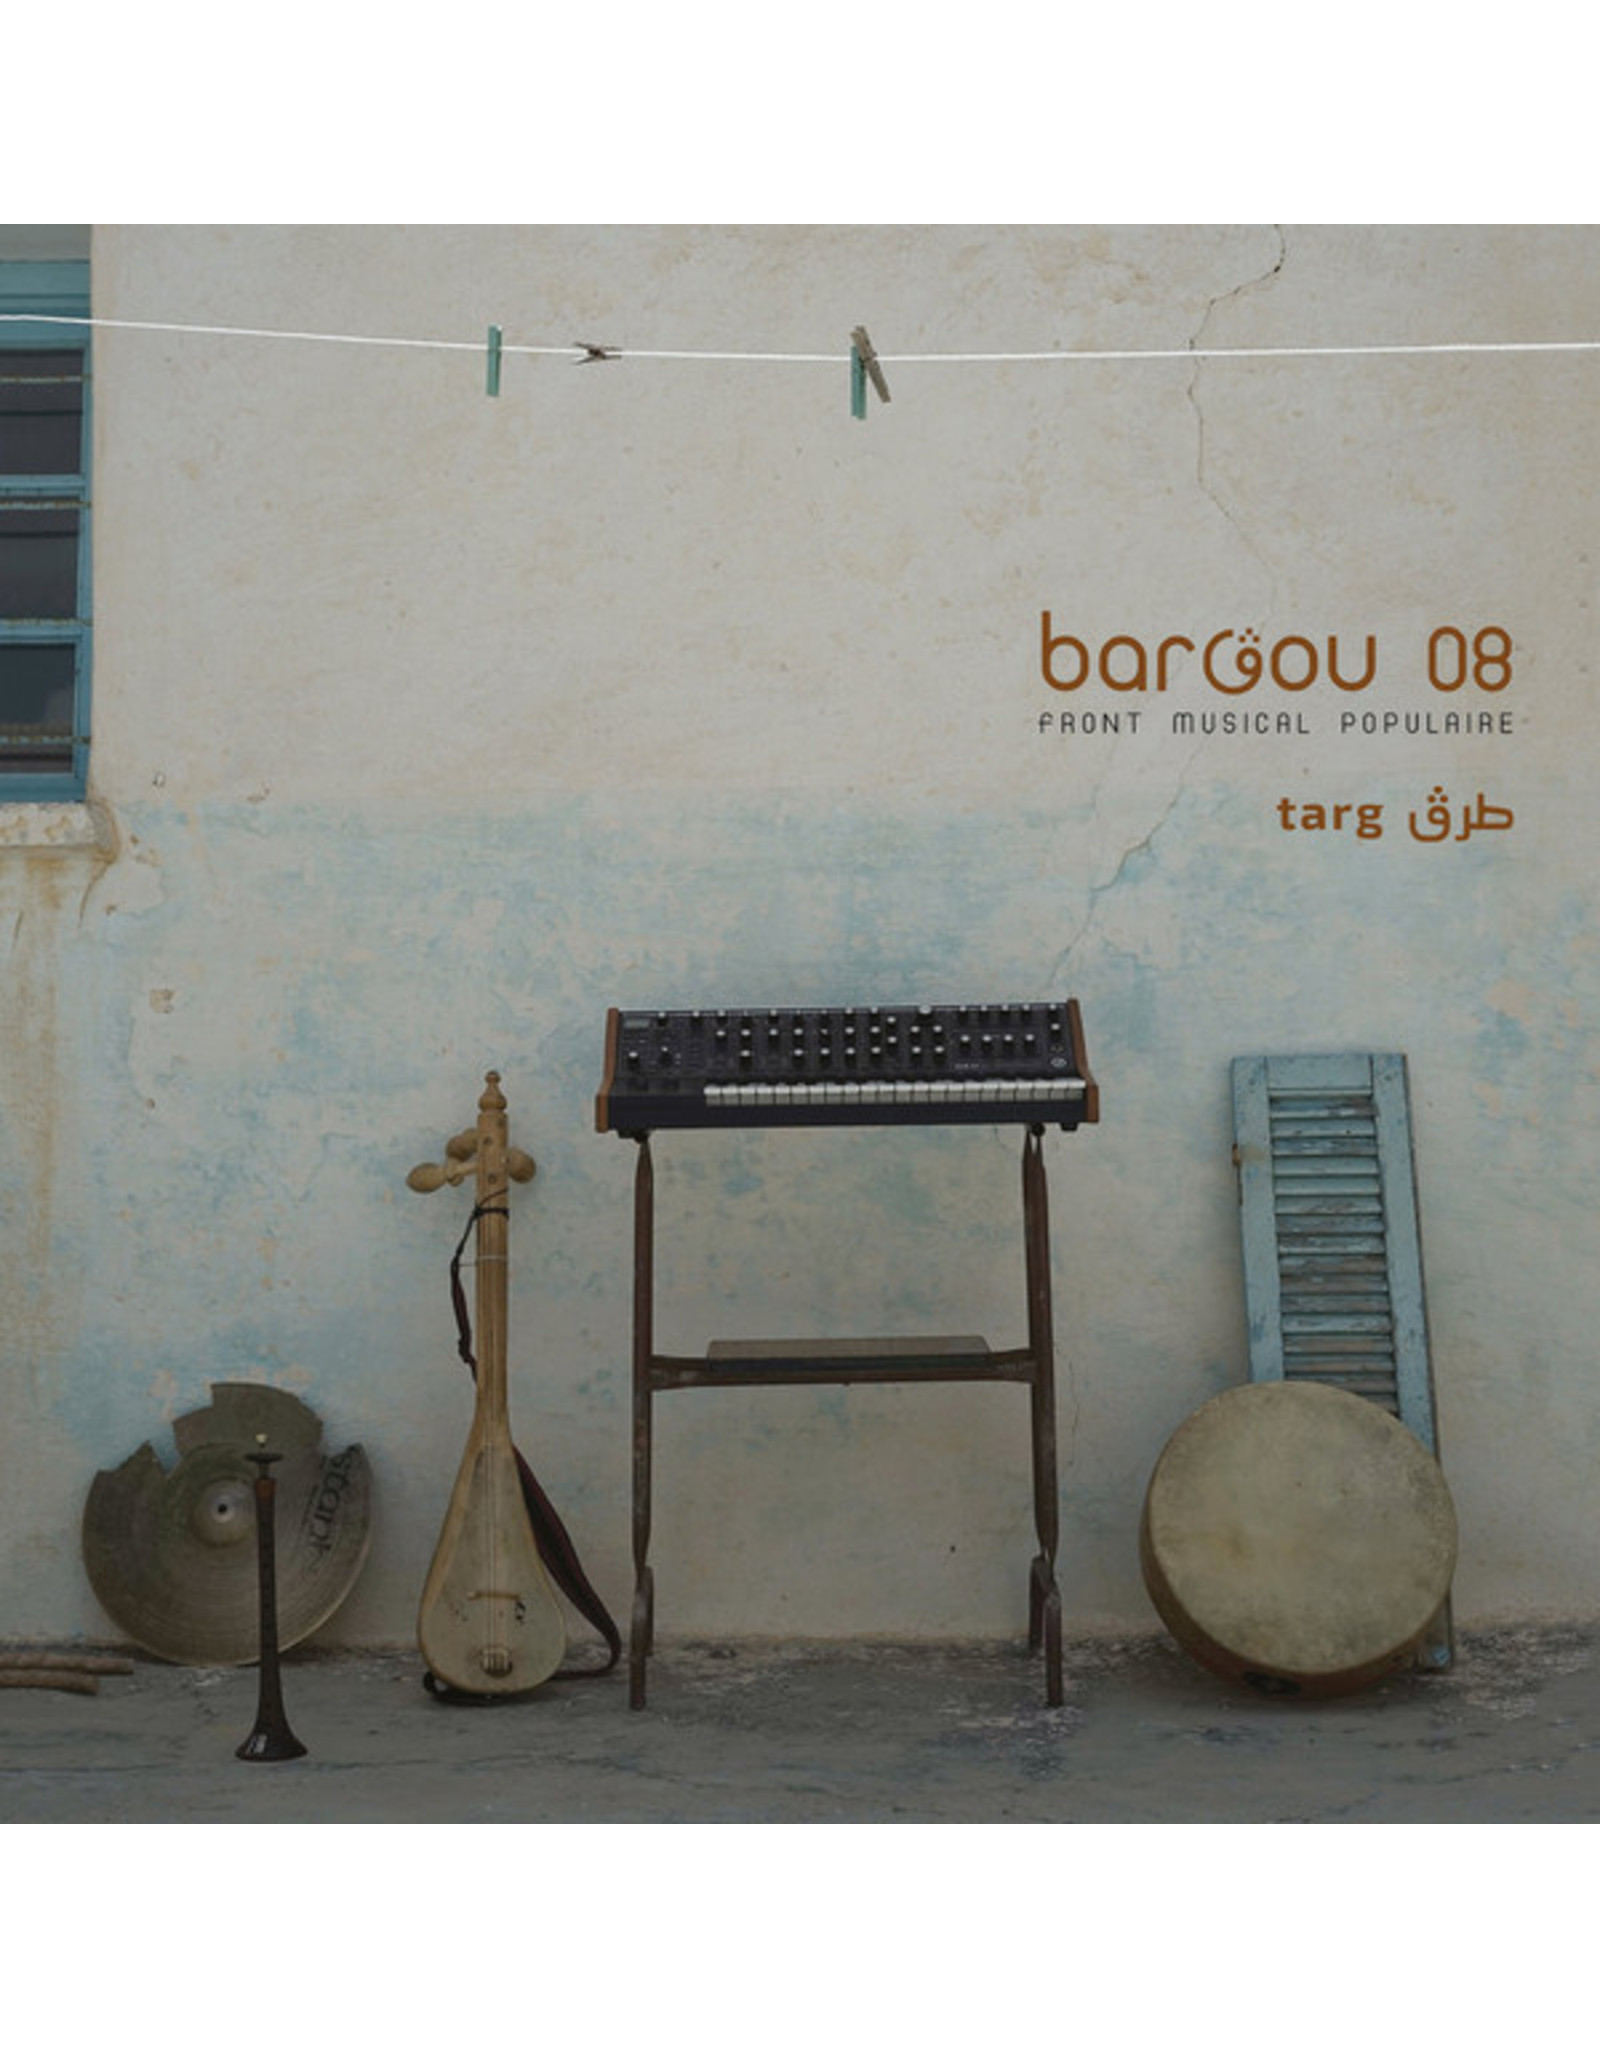 New Vinyl Bargou 08 - Targ LP